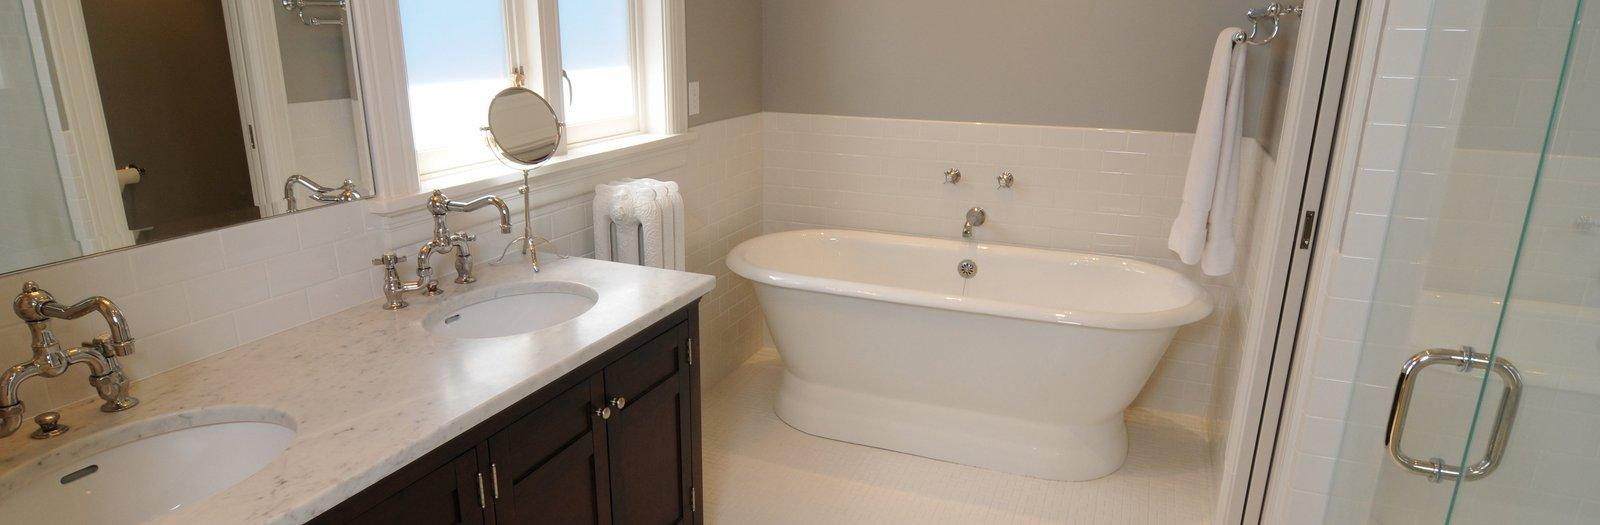 Transitional Bathroom with half white subway tiled bathroom wall